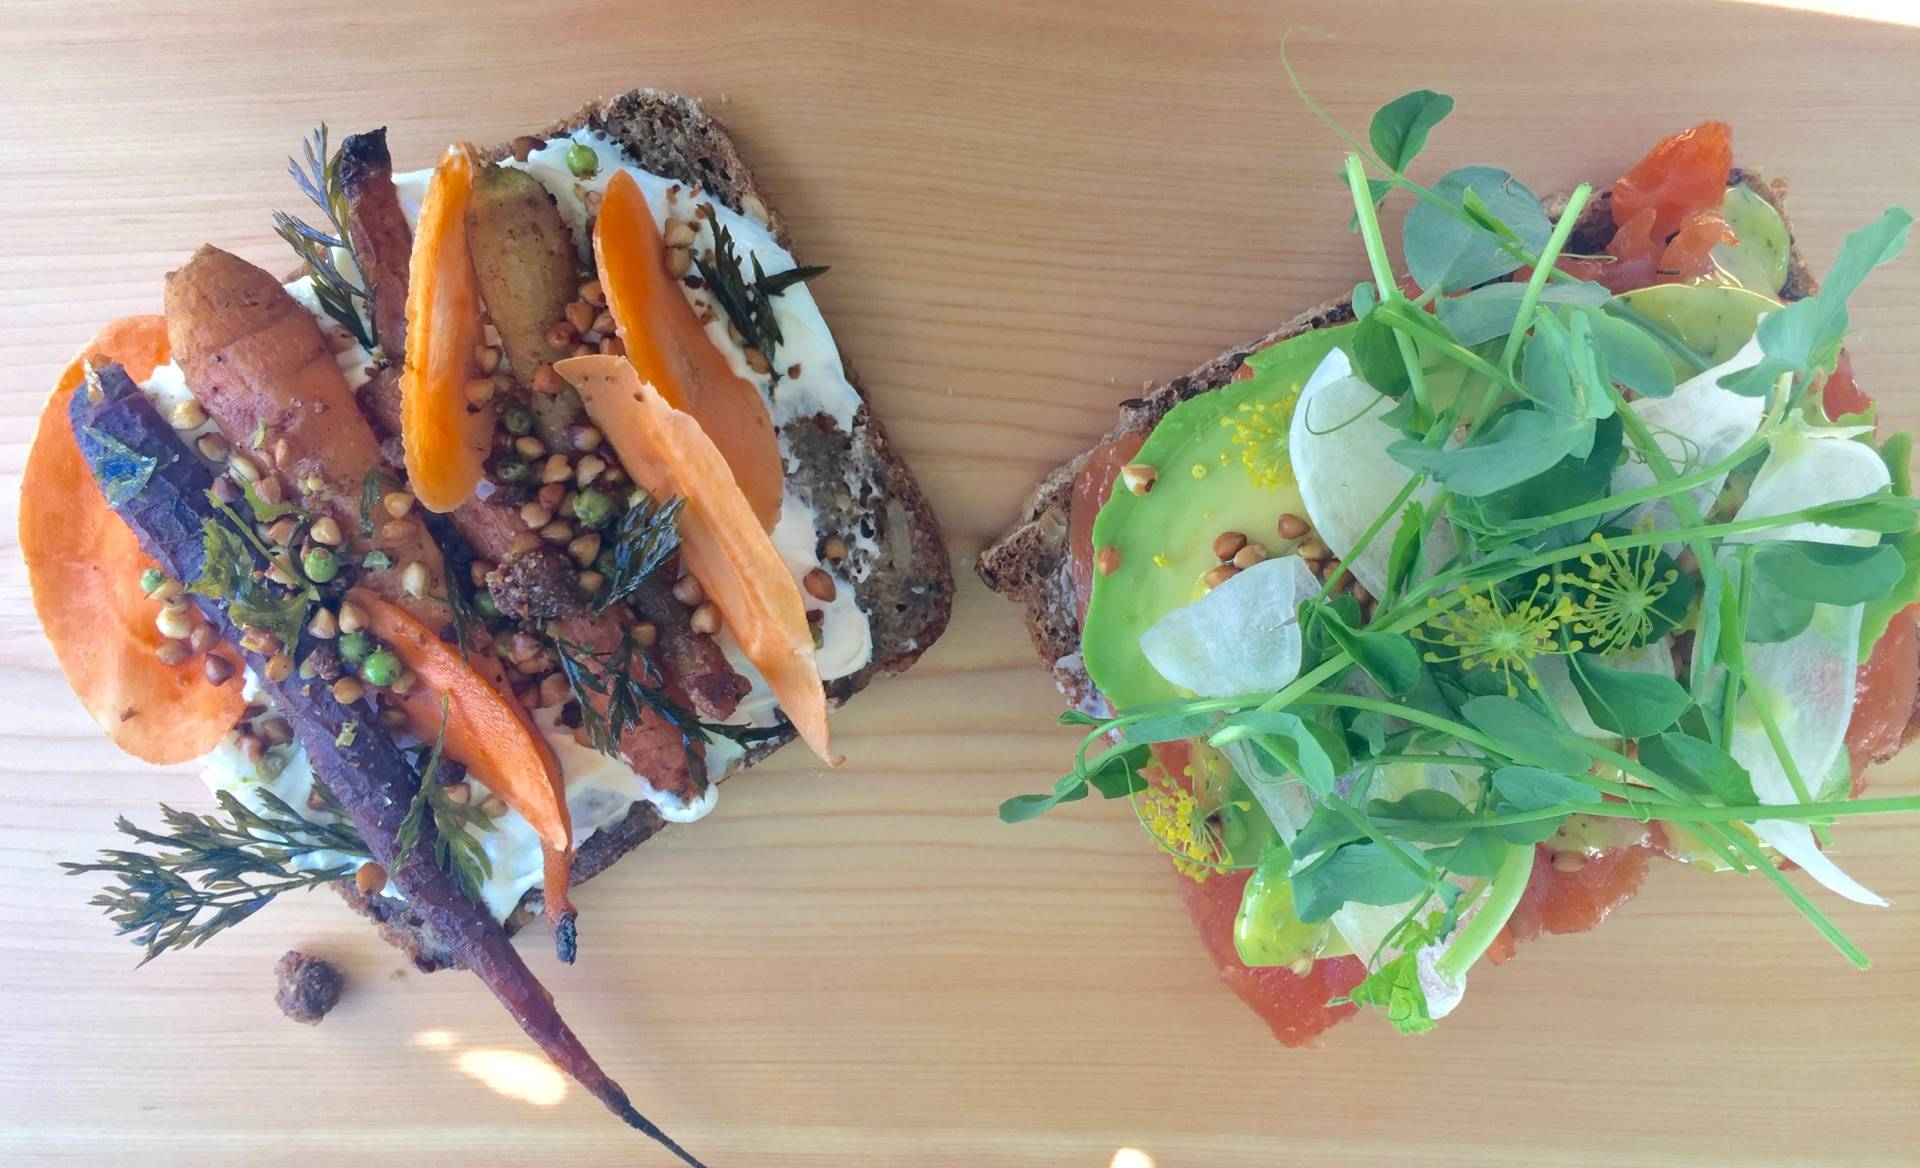 (L) Roasted pomegranate-cured carrots, toasted buckwheat,  tahini and lebna, crispy carrot greens and (R) salmon, avocado, icicle radishes, micro greens, dill honey mustard, flowering fennel. Both smørrebrød sandwiches created by Kristen Rasmussen on her homemade rye bread. Anna Mindess